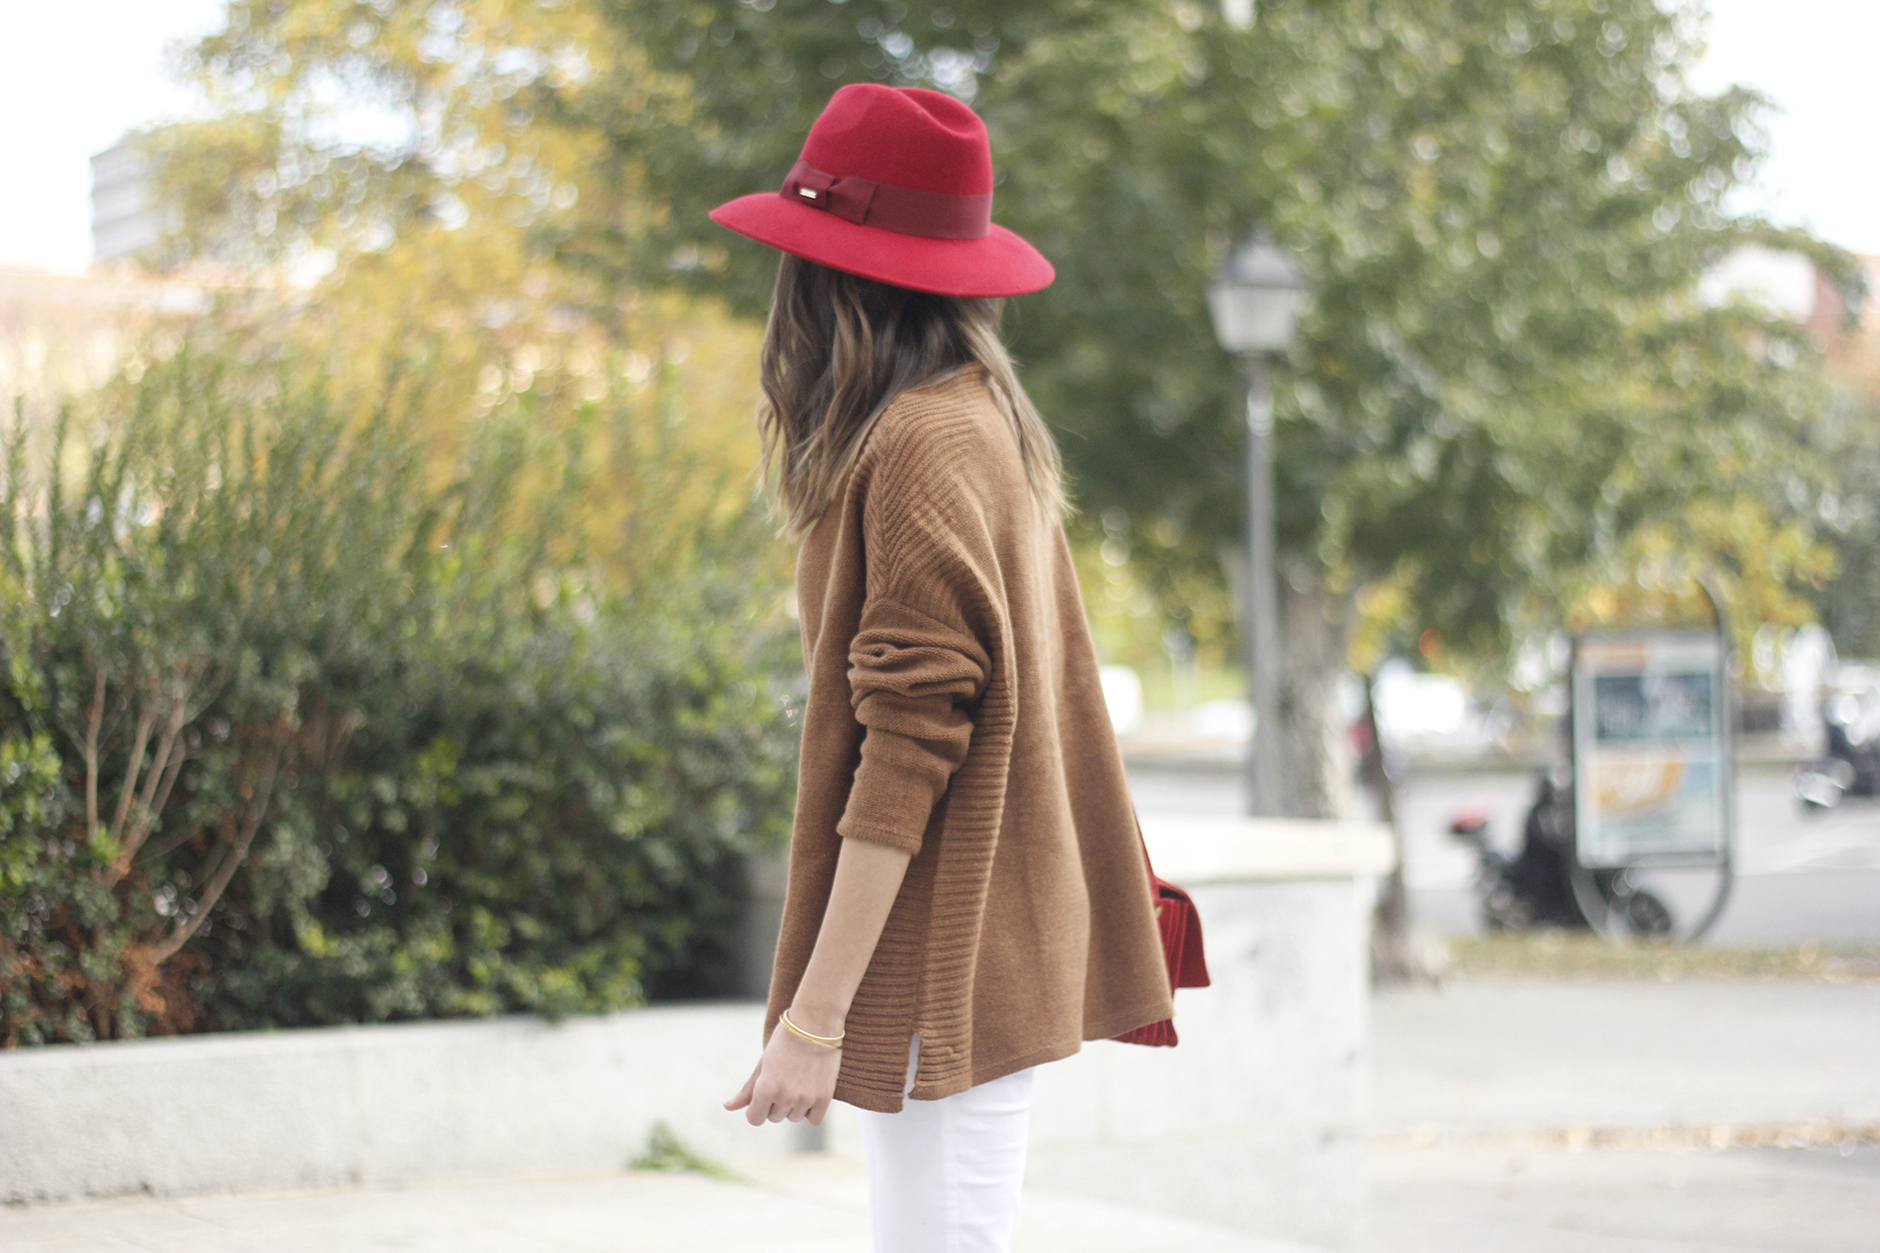 Turtleneck Sweater white jeans red heels red hat uterqüe outfit09